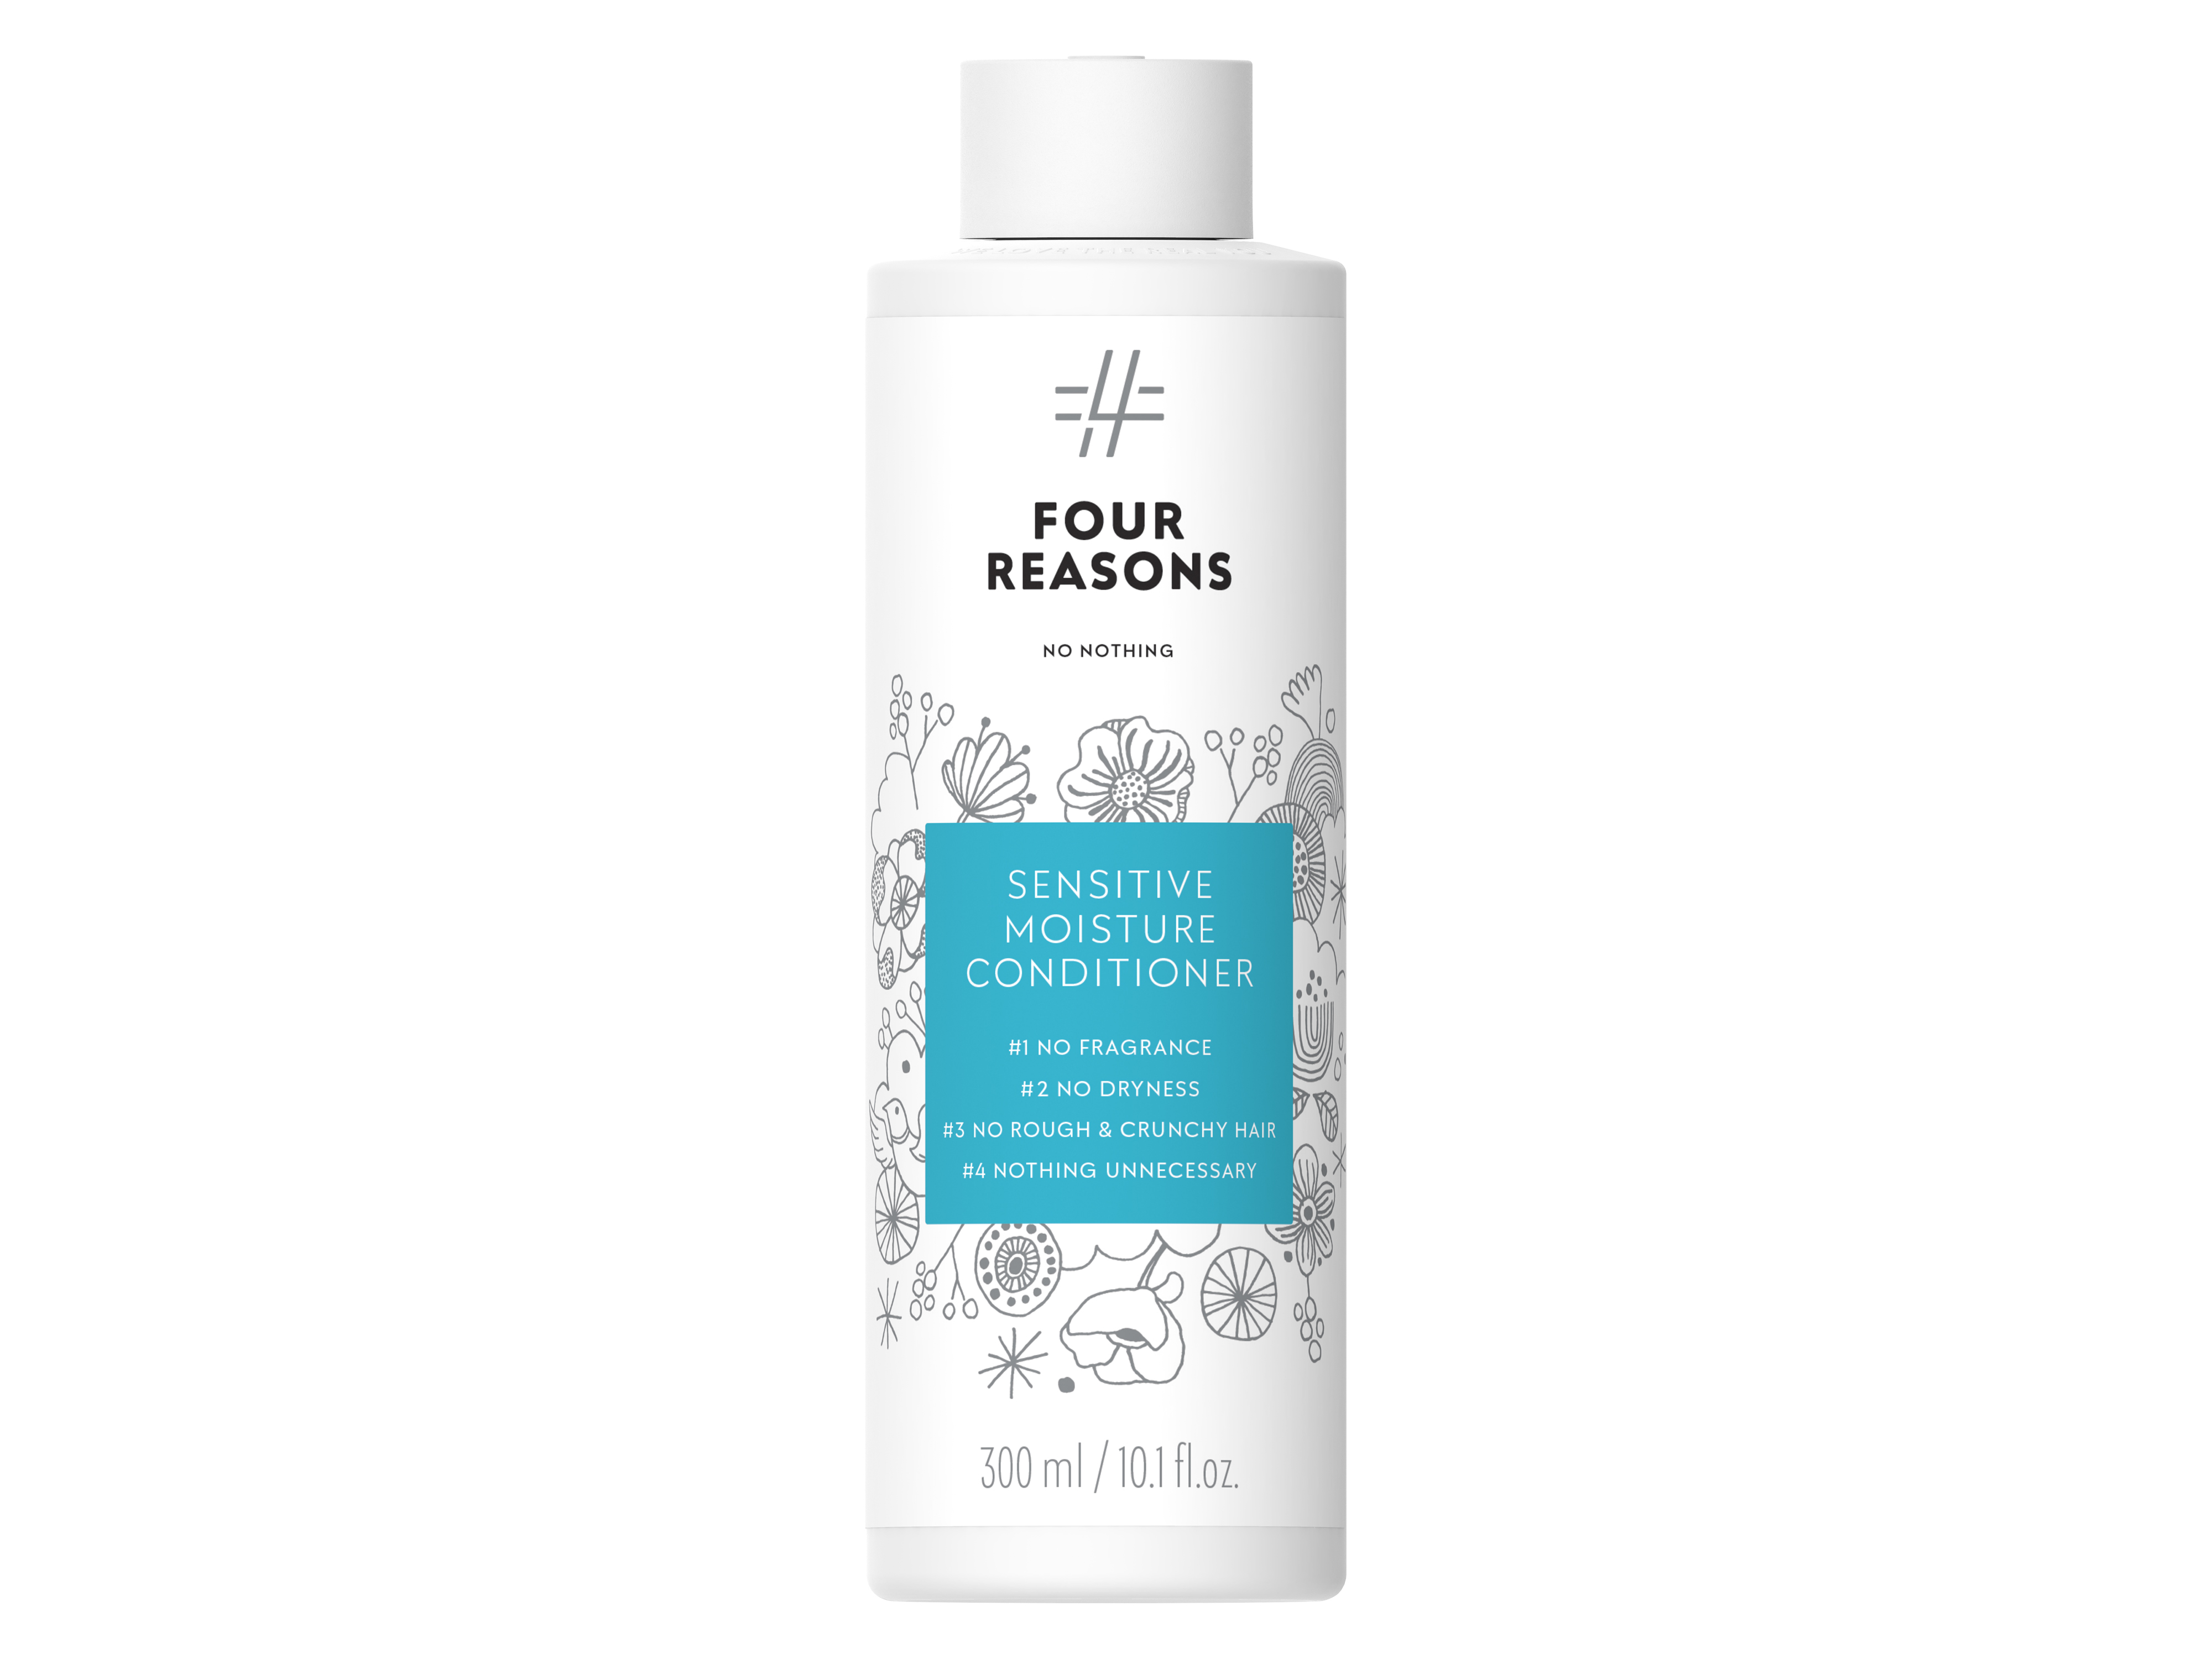 Four Reasons No Nothing Sensitive Moisture Conditioner, 300 ml